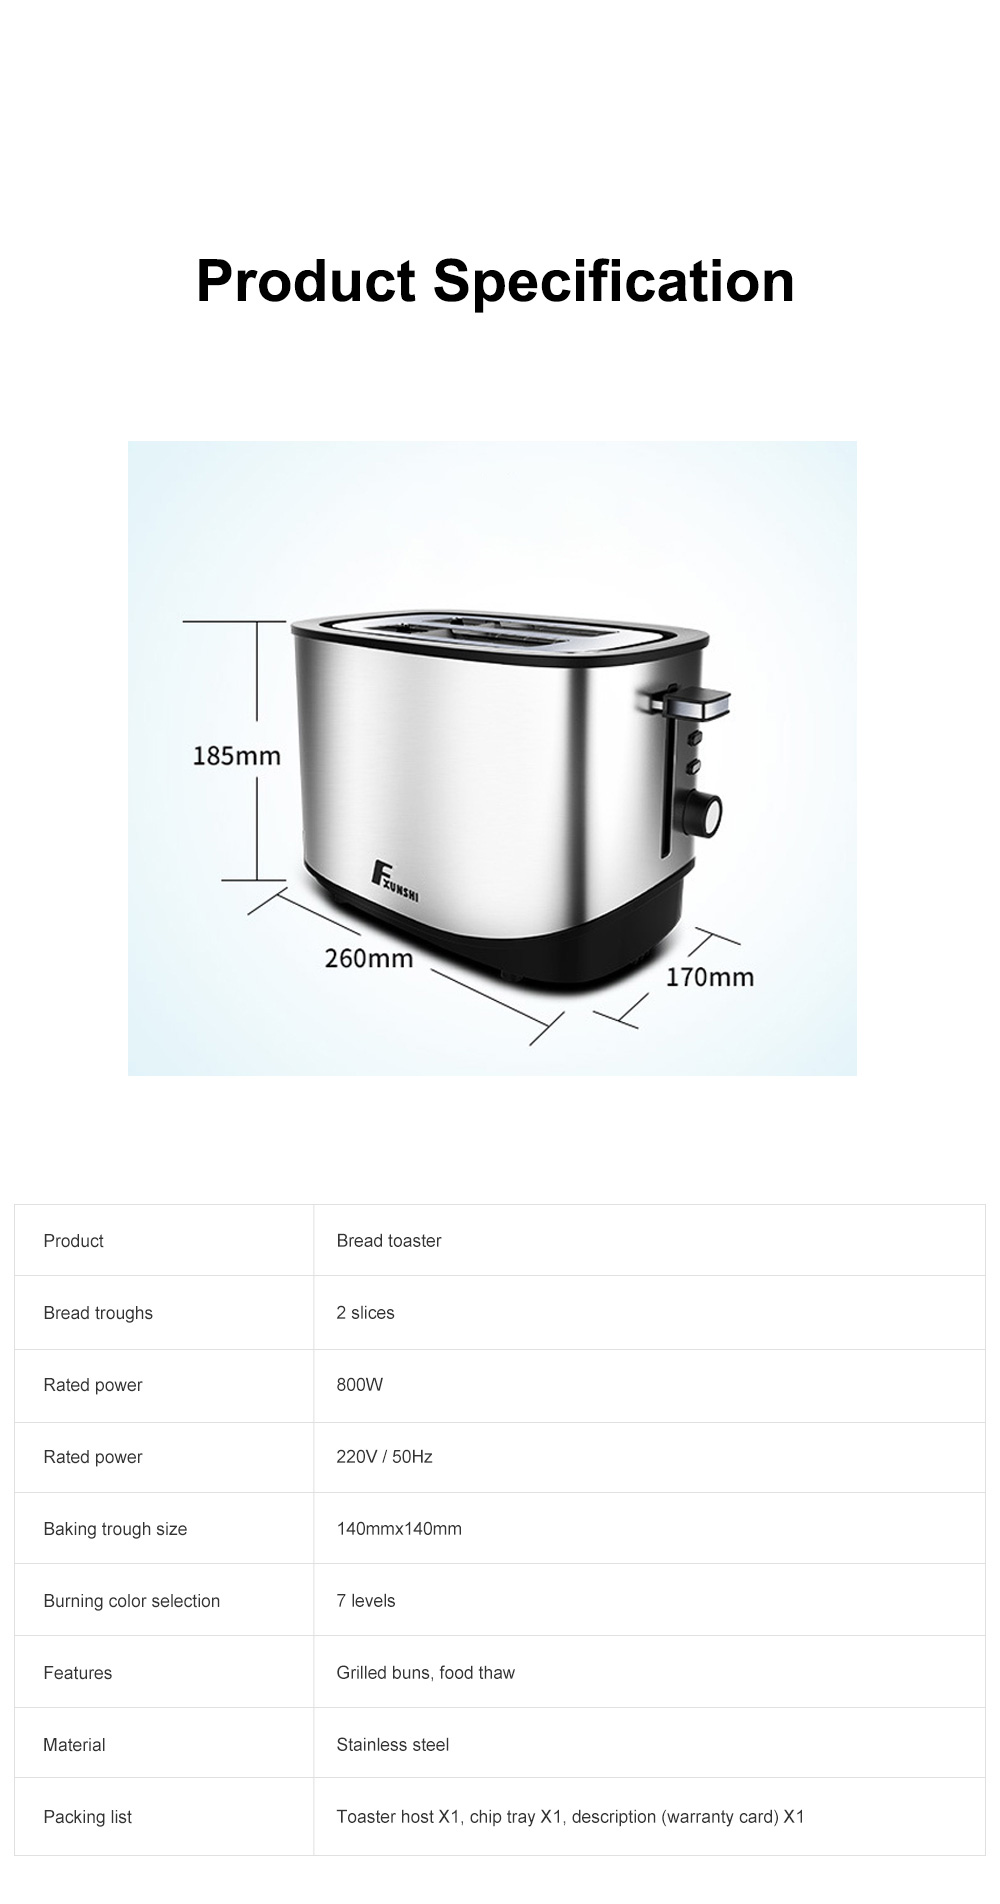 Fxunshi 800W Power Home Appliance Stainless Steel Auto Switch Off 2 Slices 2 Slot Portable Automatic Bread Maker Toaster 10